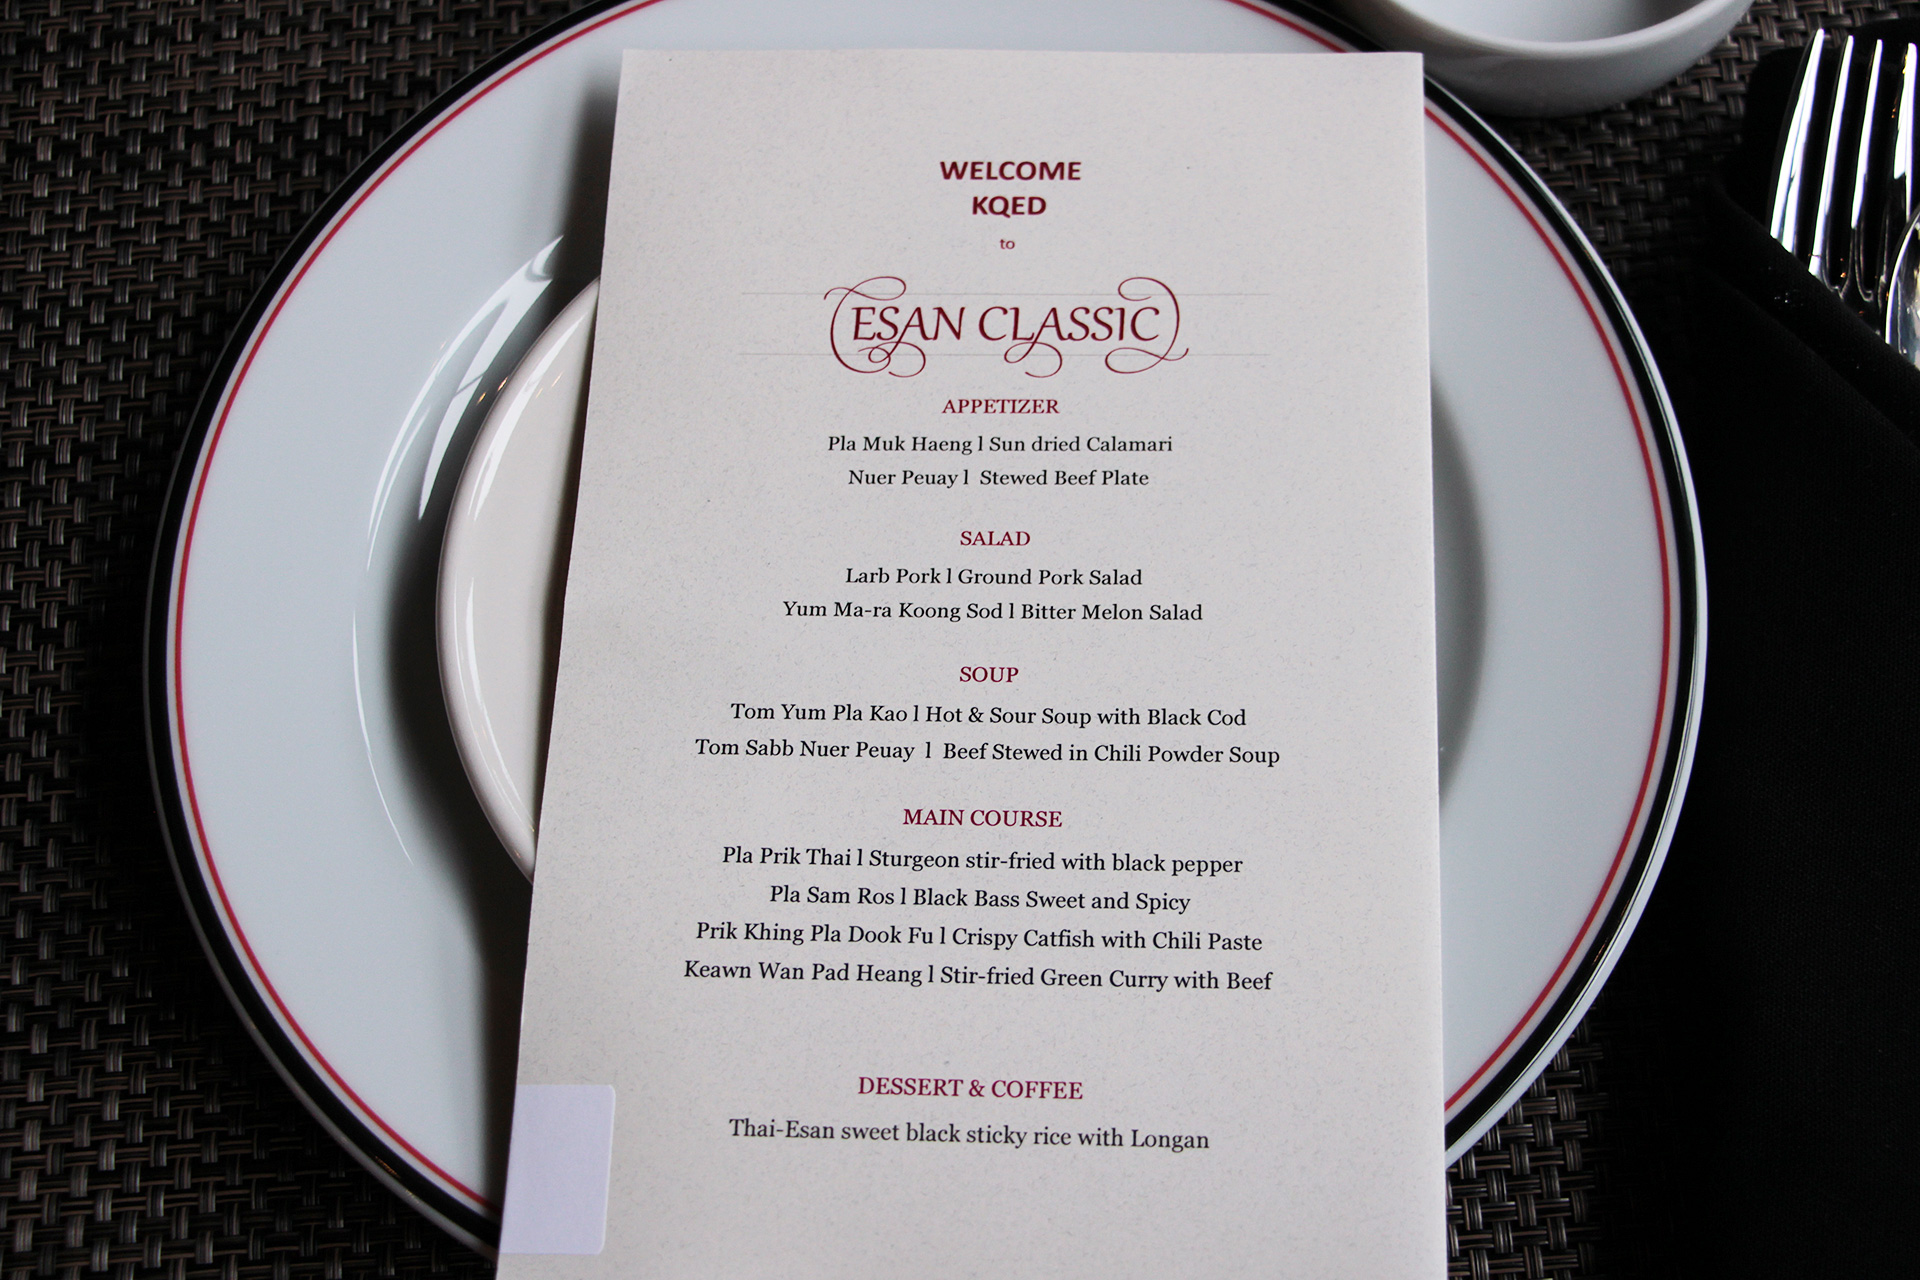 Esan Classic media preview menu.